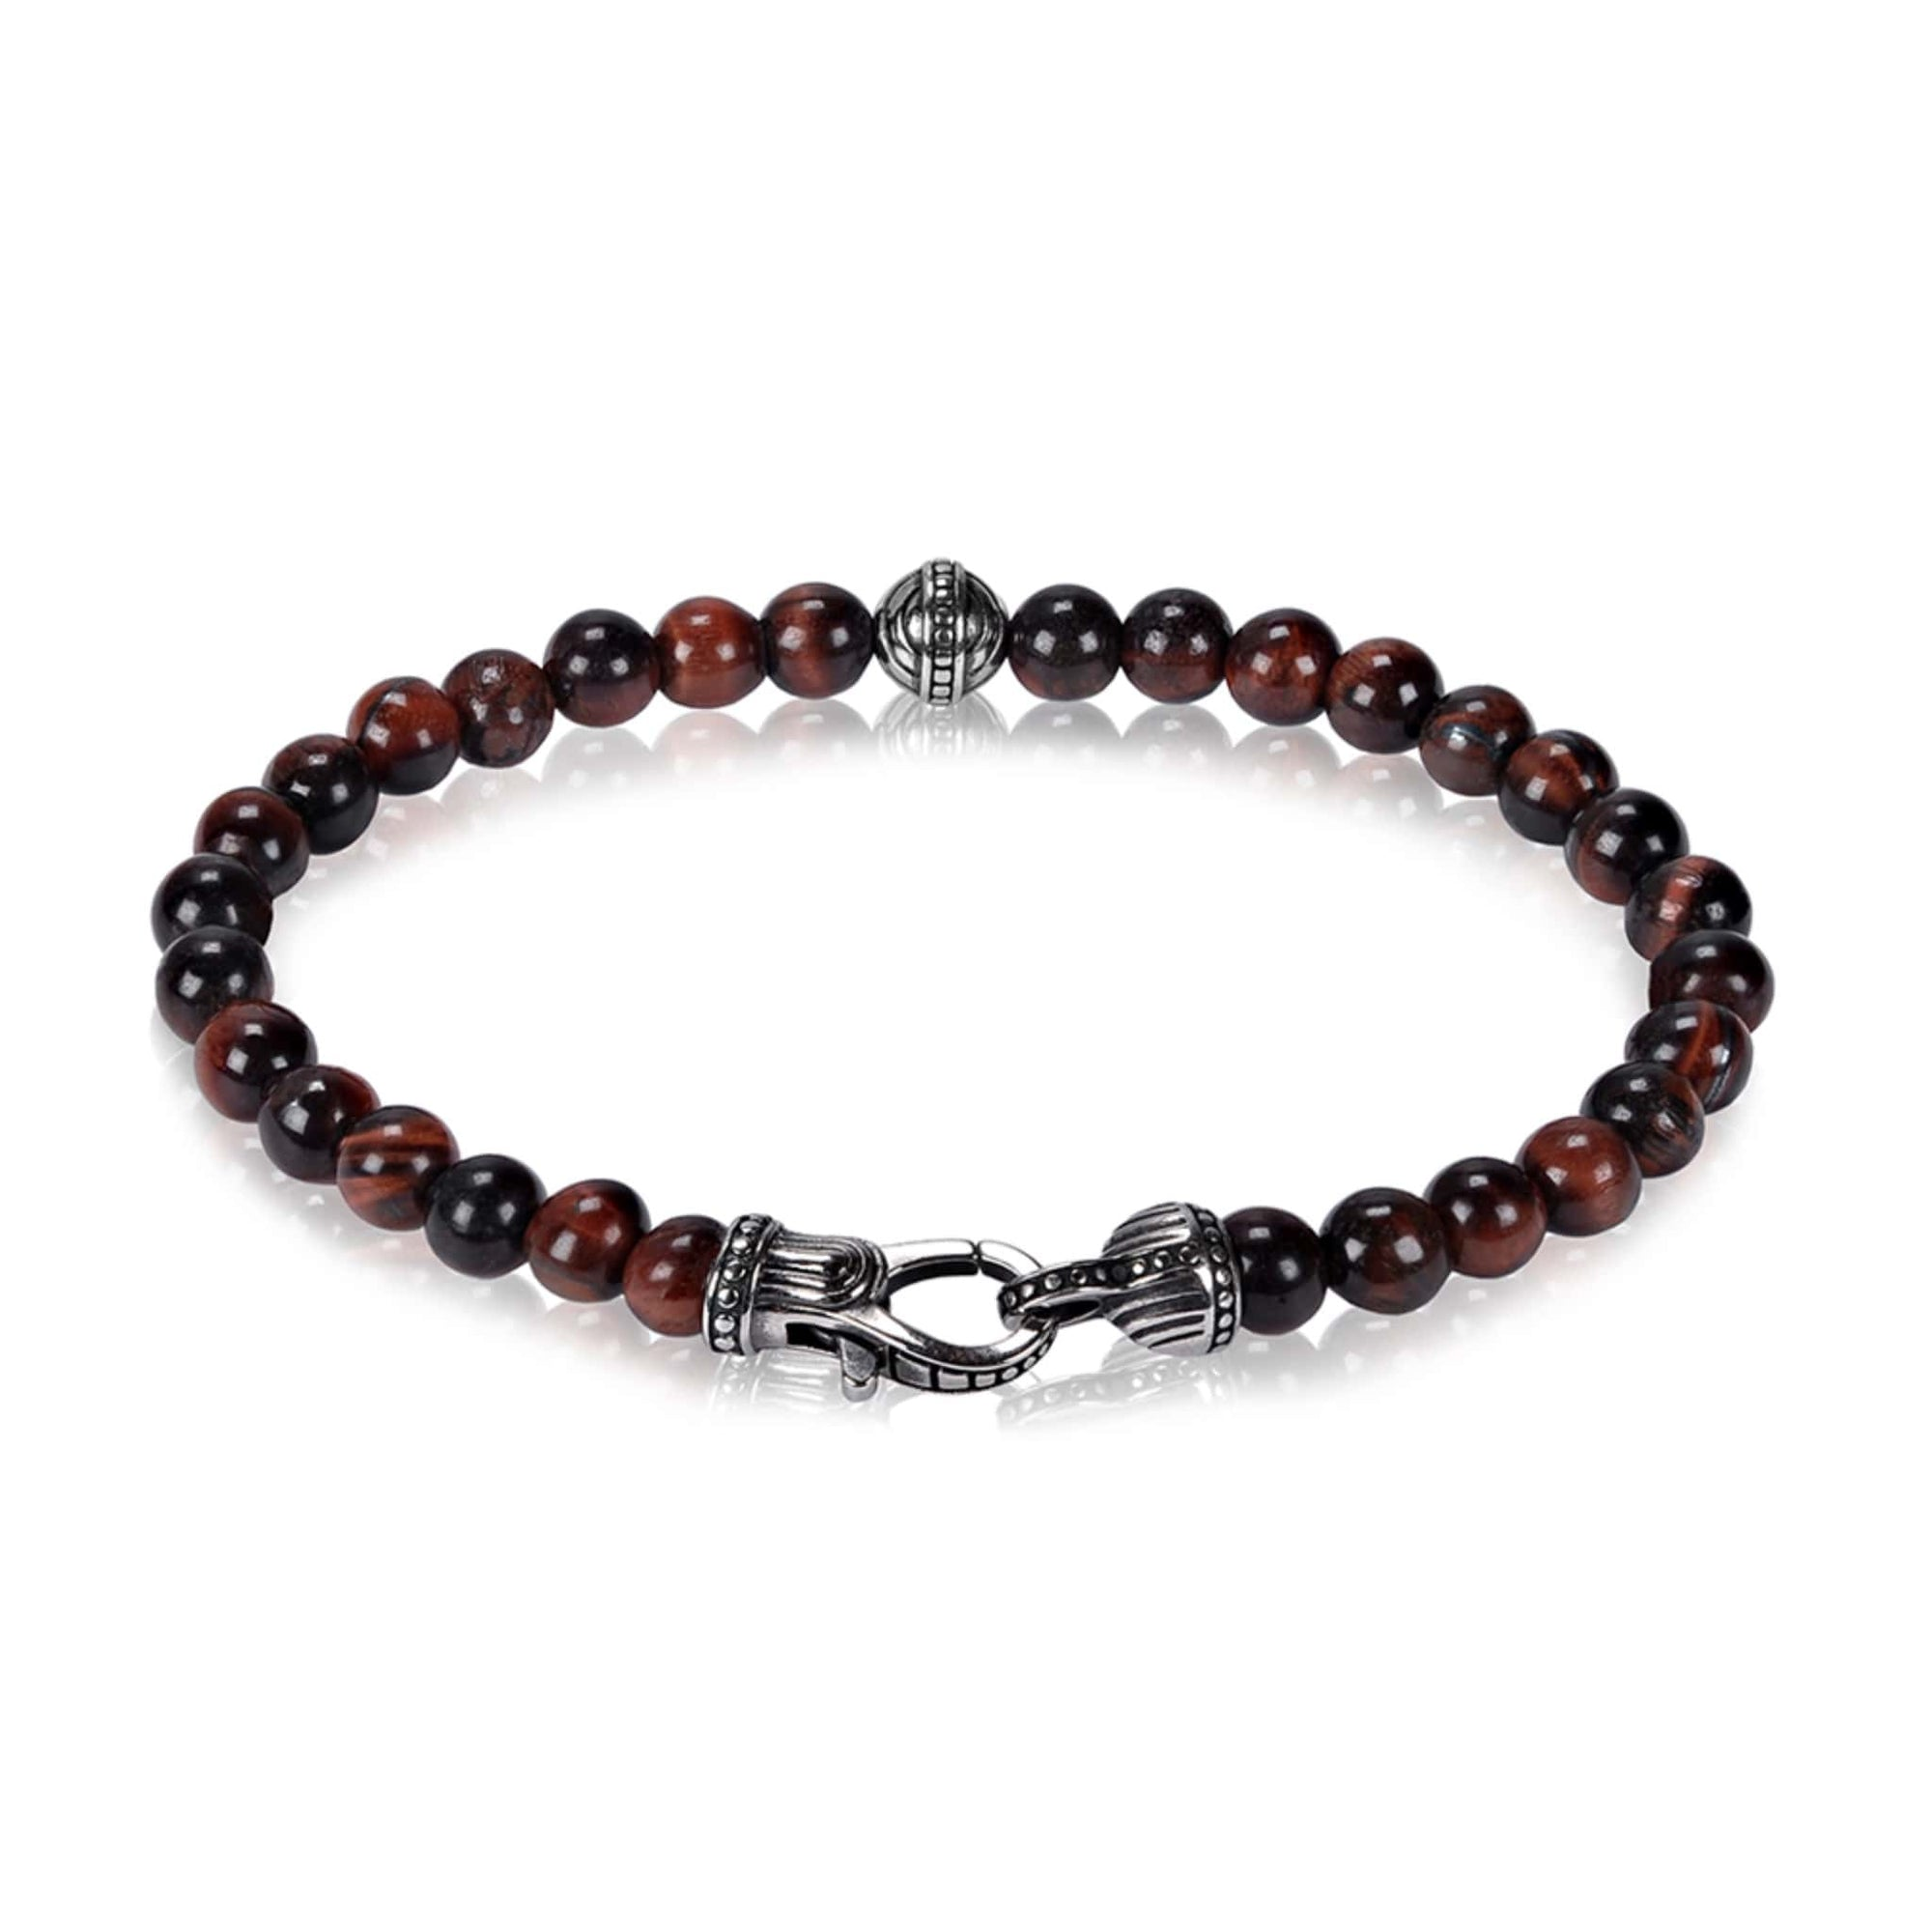 6mm Red Tiger Eye Bead Bracelet at Arman's Jewellers